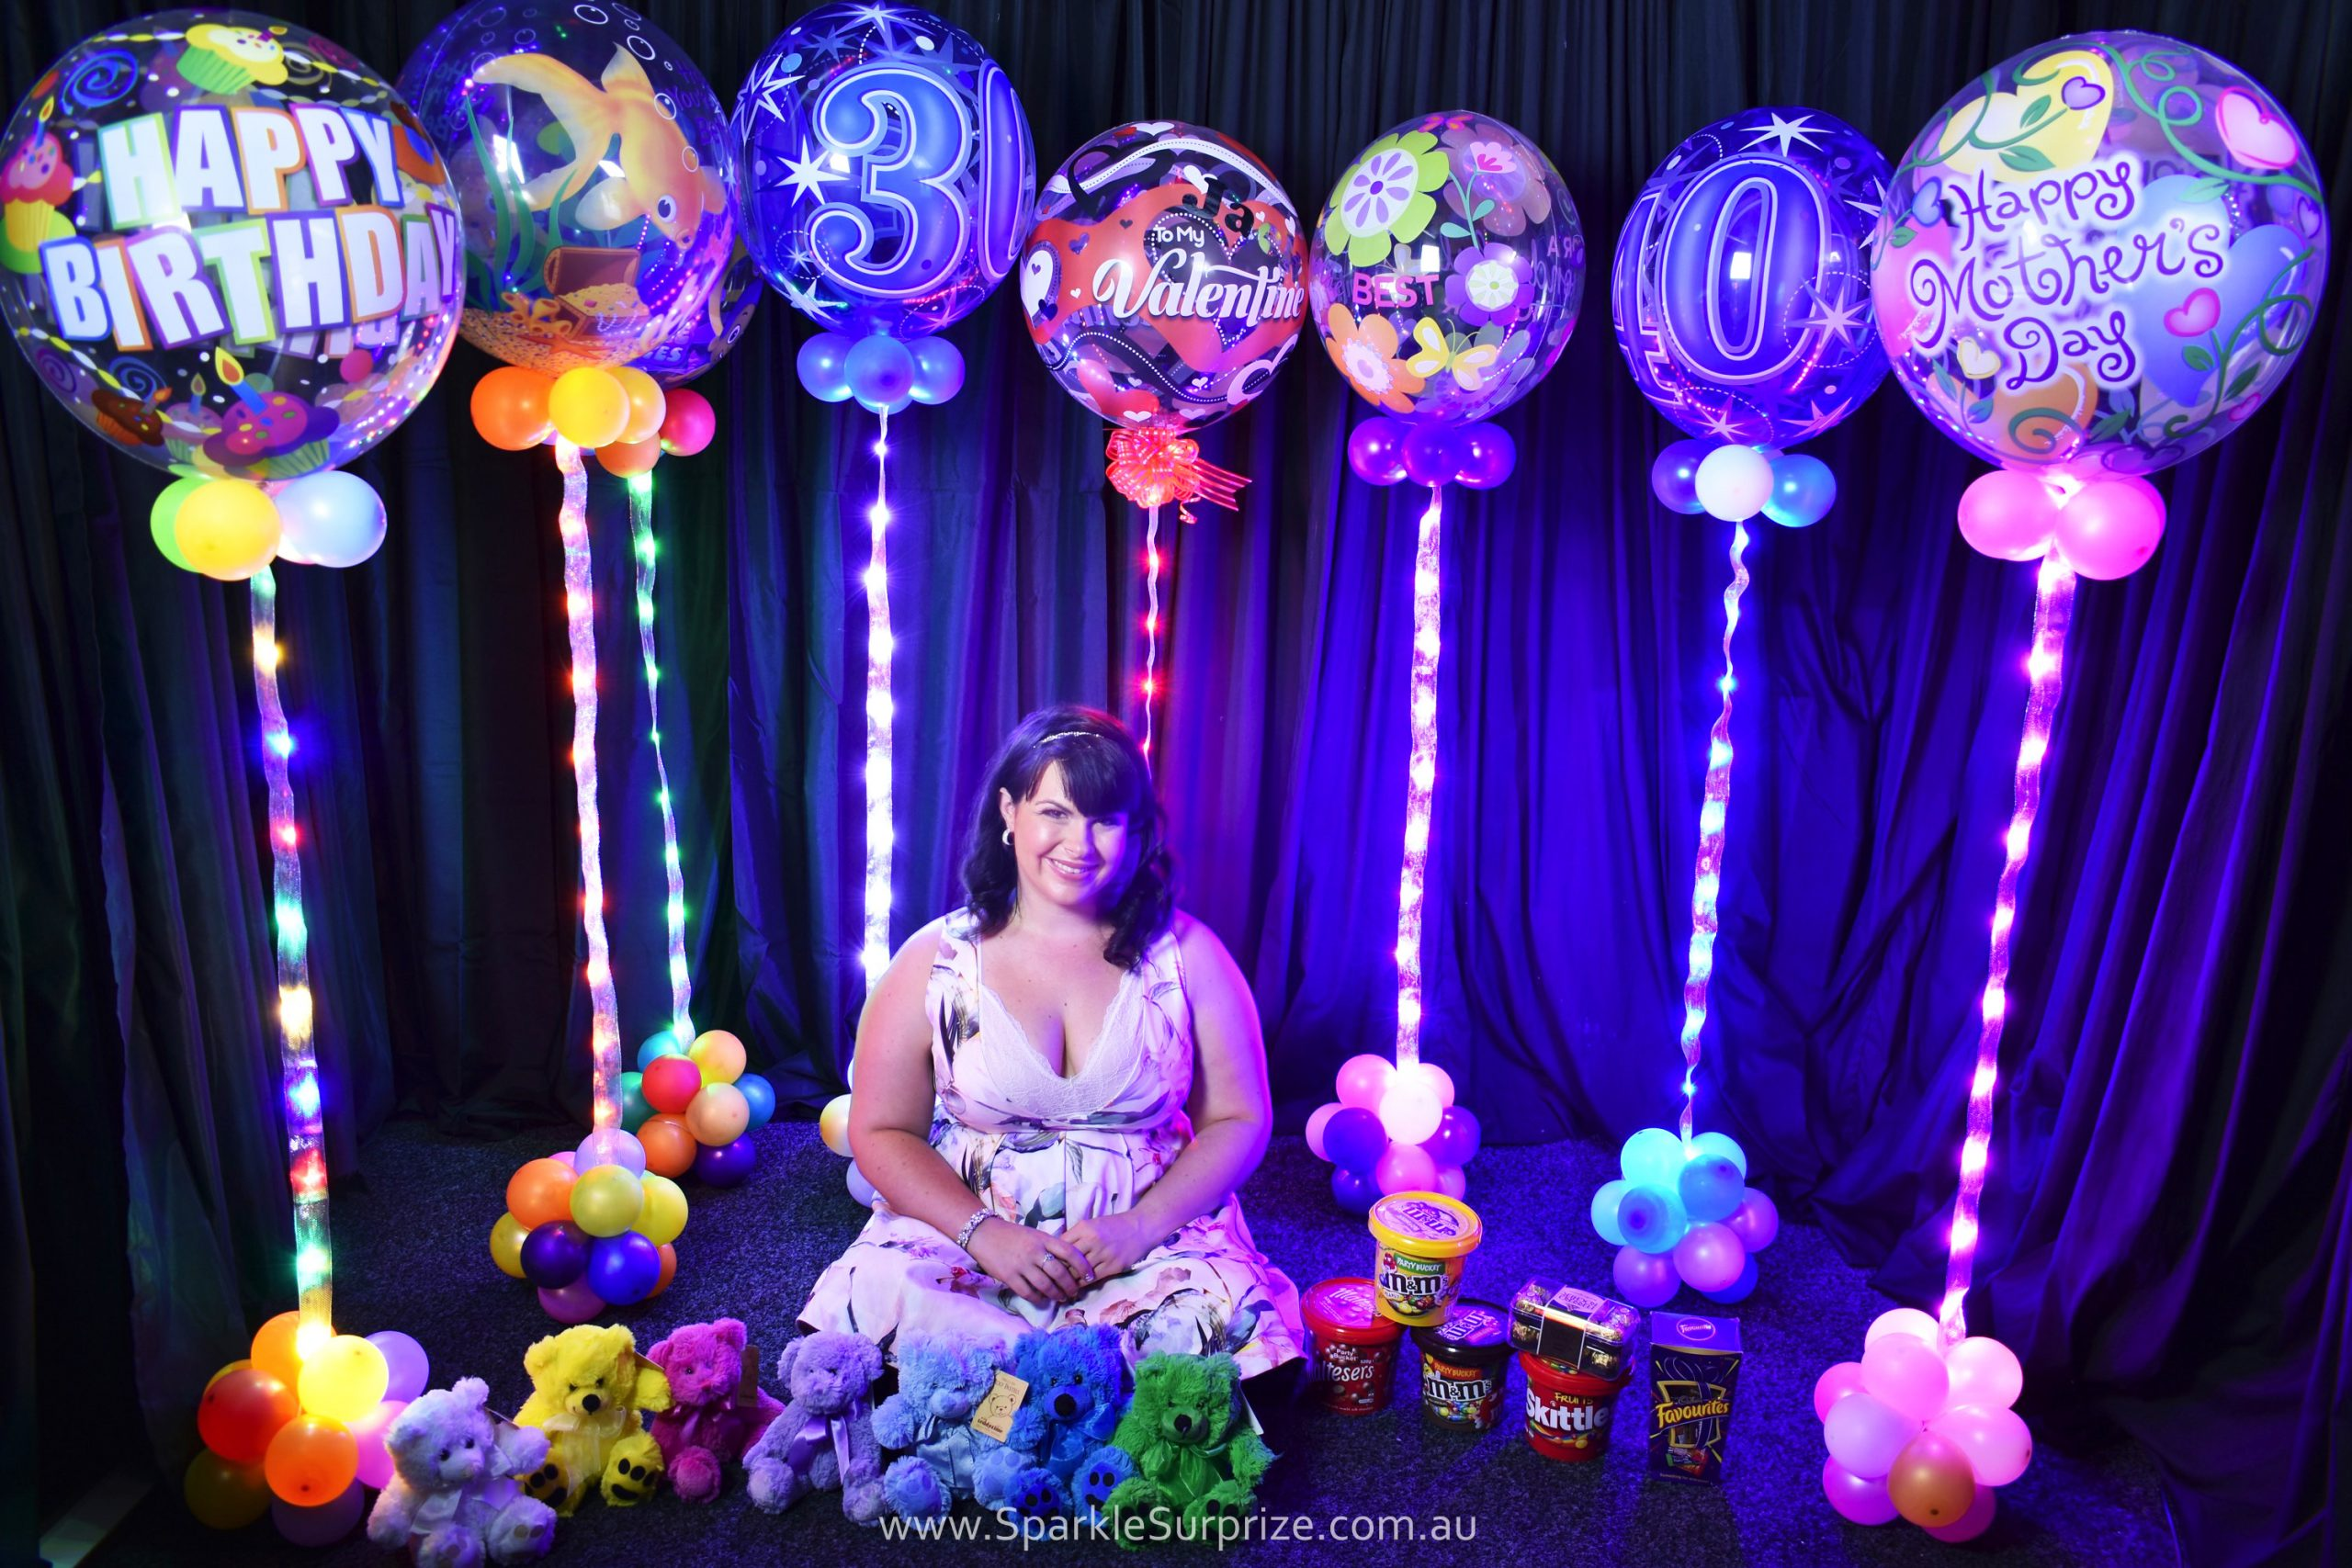 Balloons for All – All Day Every Day